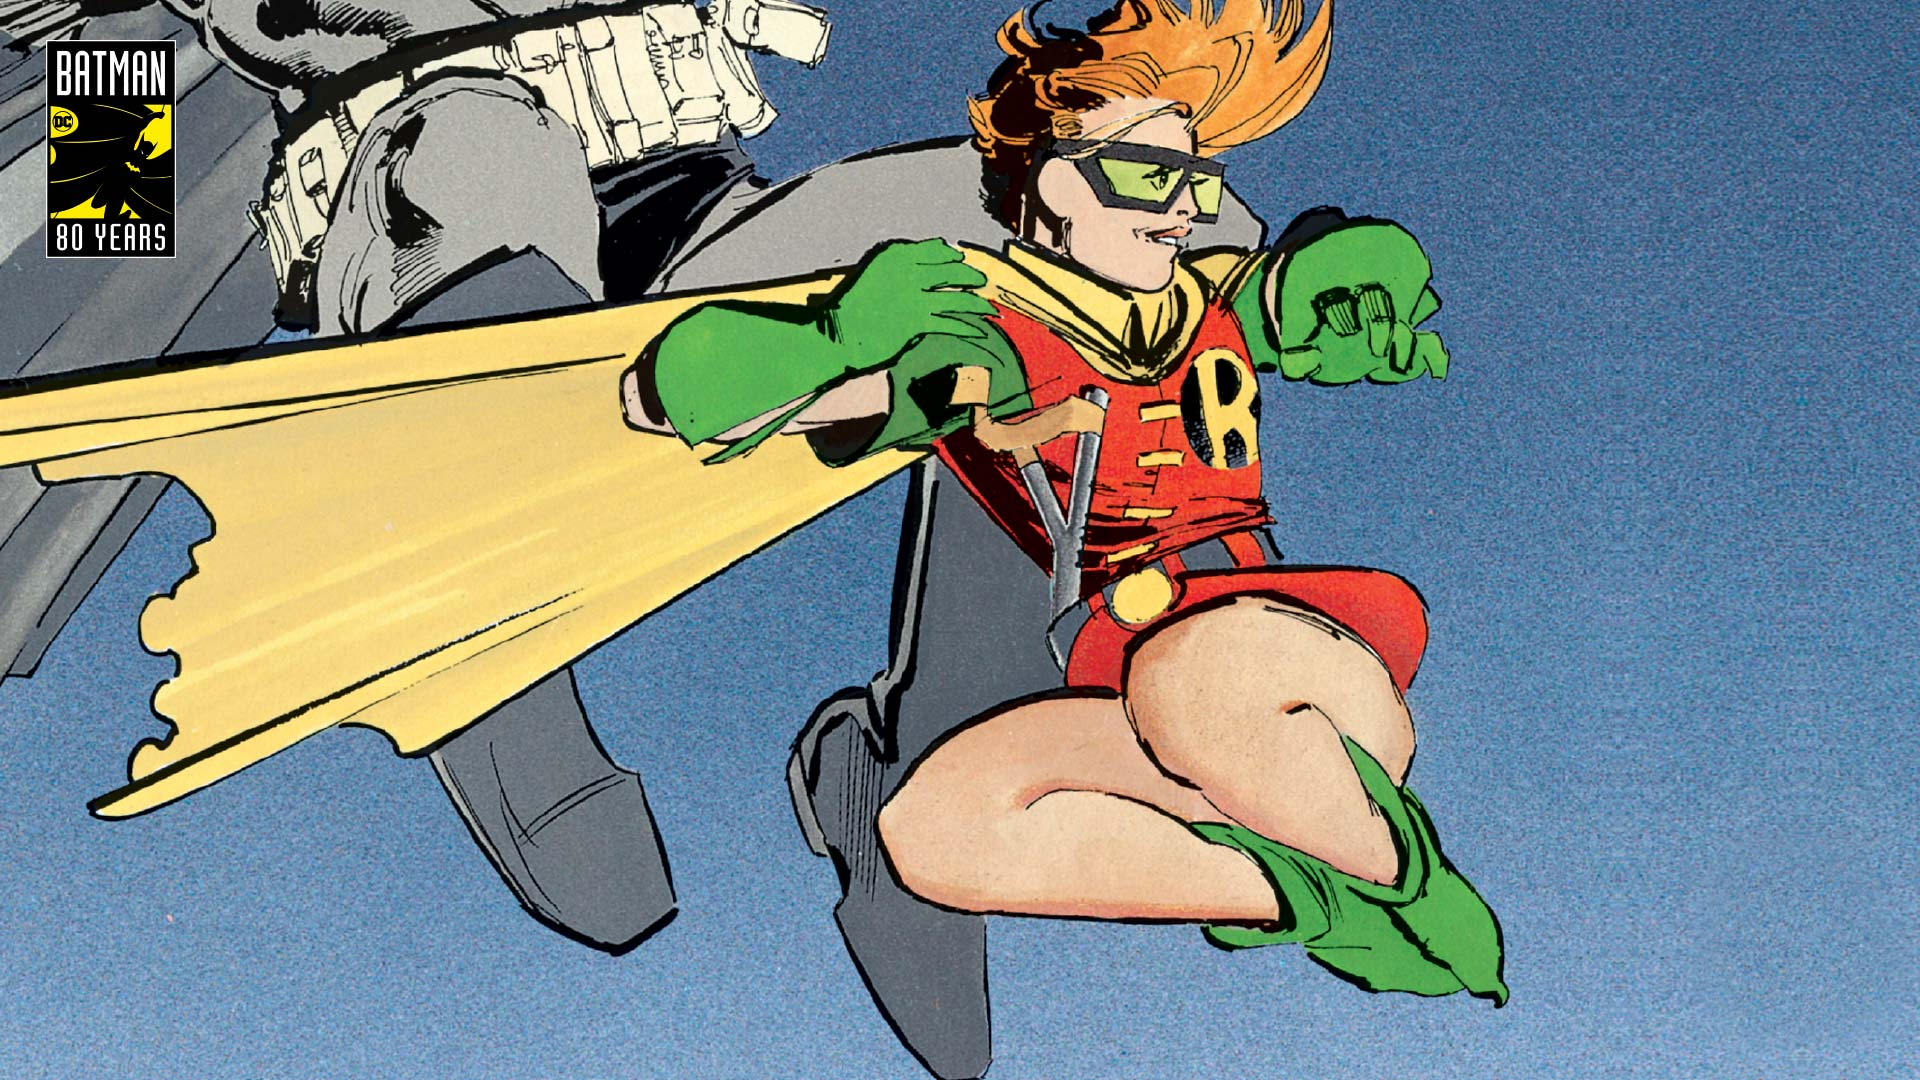 Carrie Kelly: Batman's future sidekick!